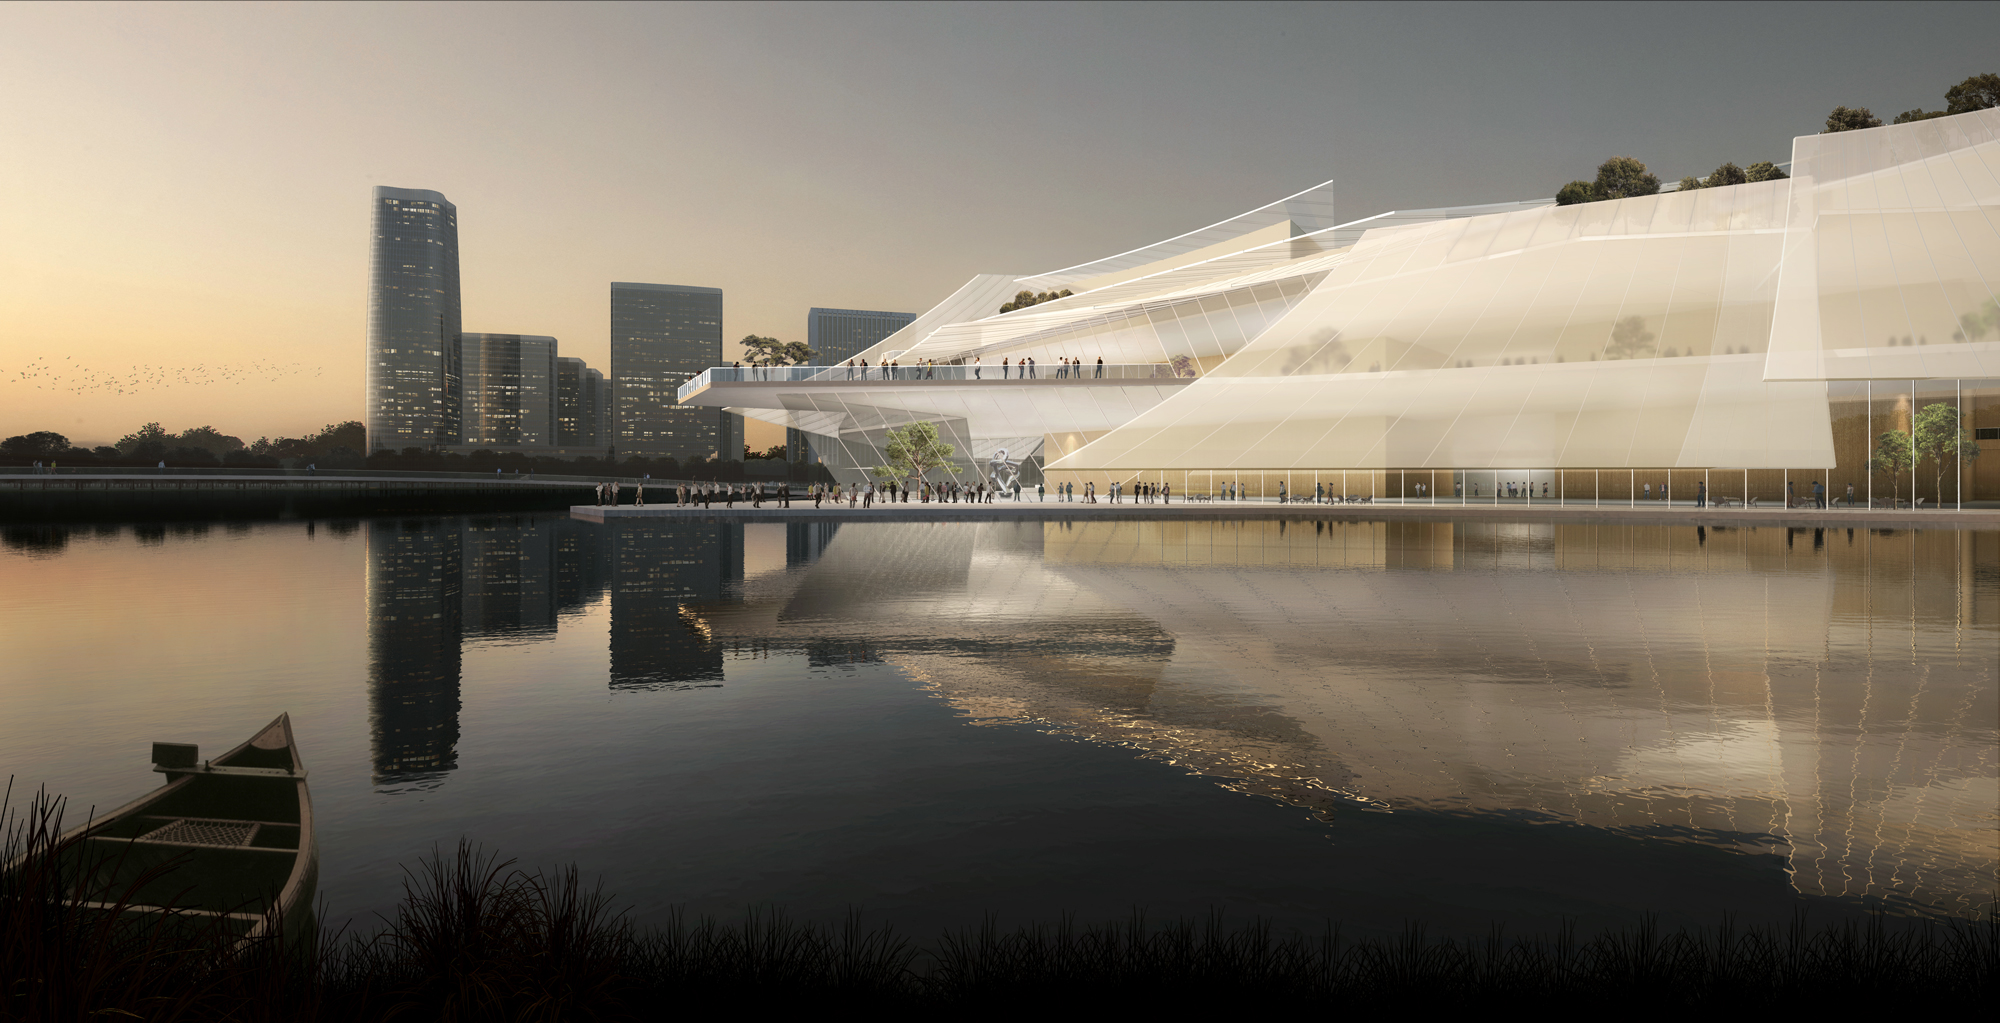 Rendering for Yiwu Grand Theatre, by MAD